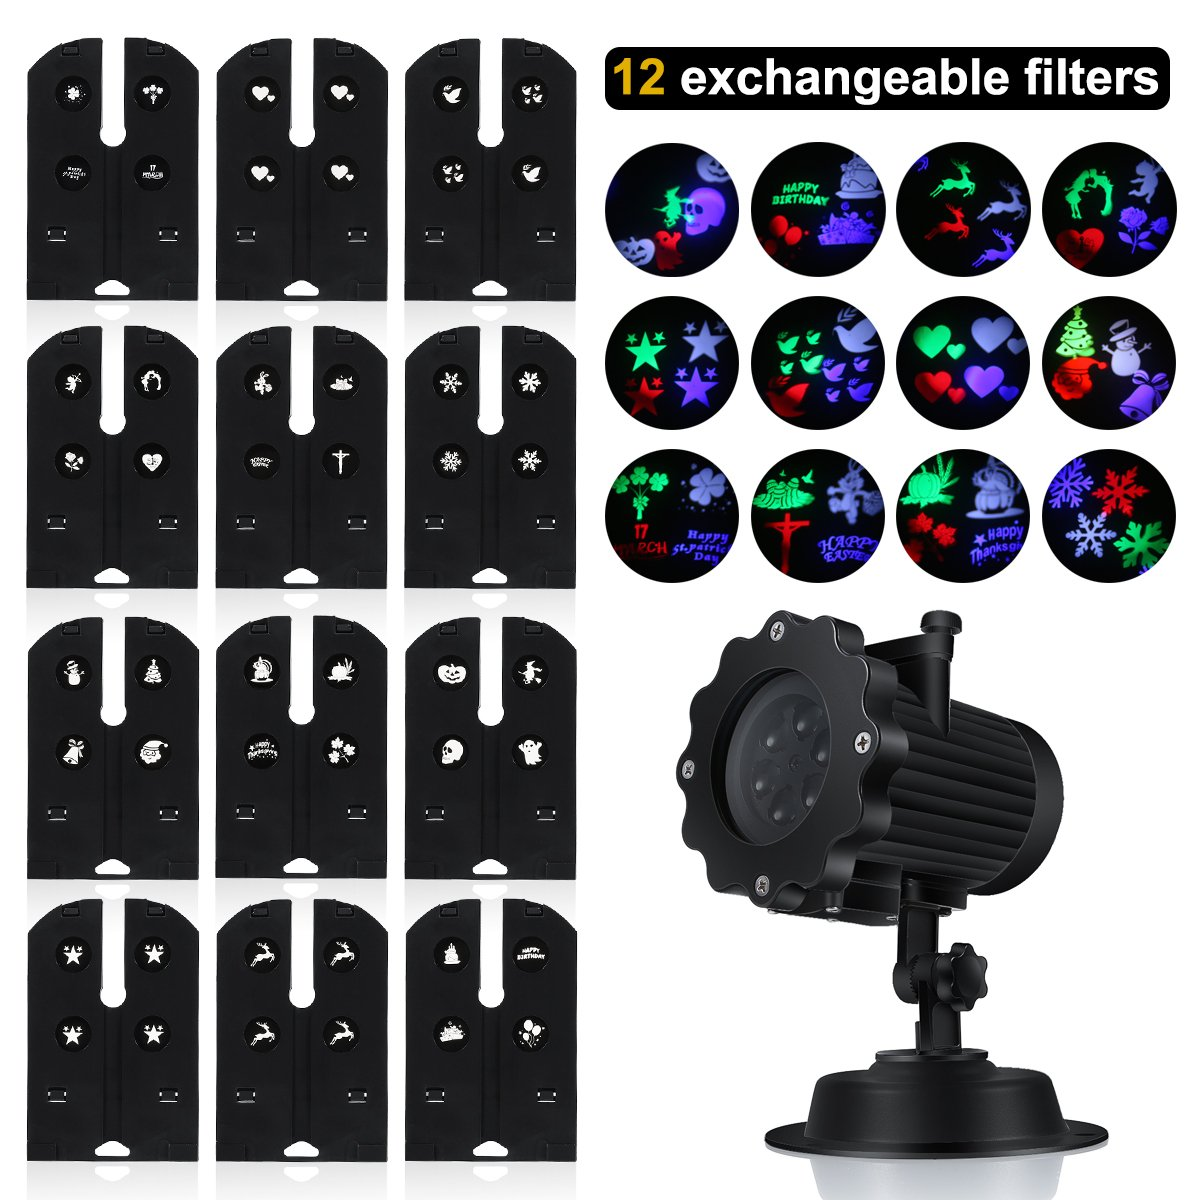 colorful Switchable Slide Garden LED Light Projector S/&G Waterproof Outdoor Indoor Landscape Projector Lamp for Christmas Party Birthday Holiday Landscape Decoration